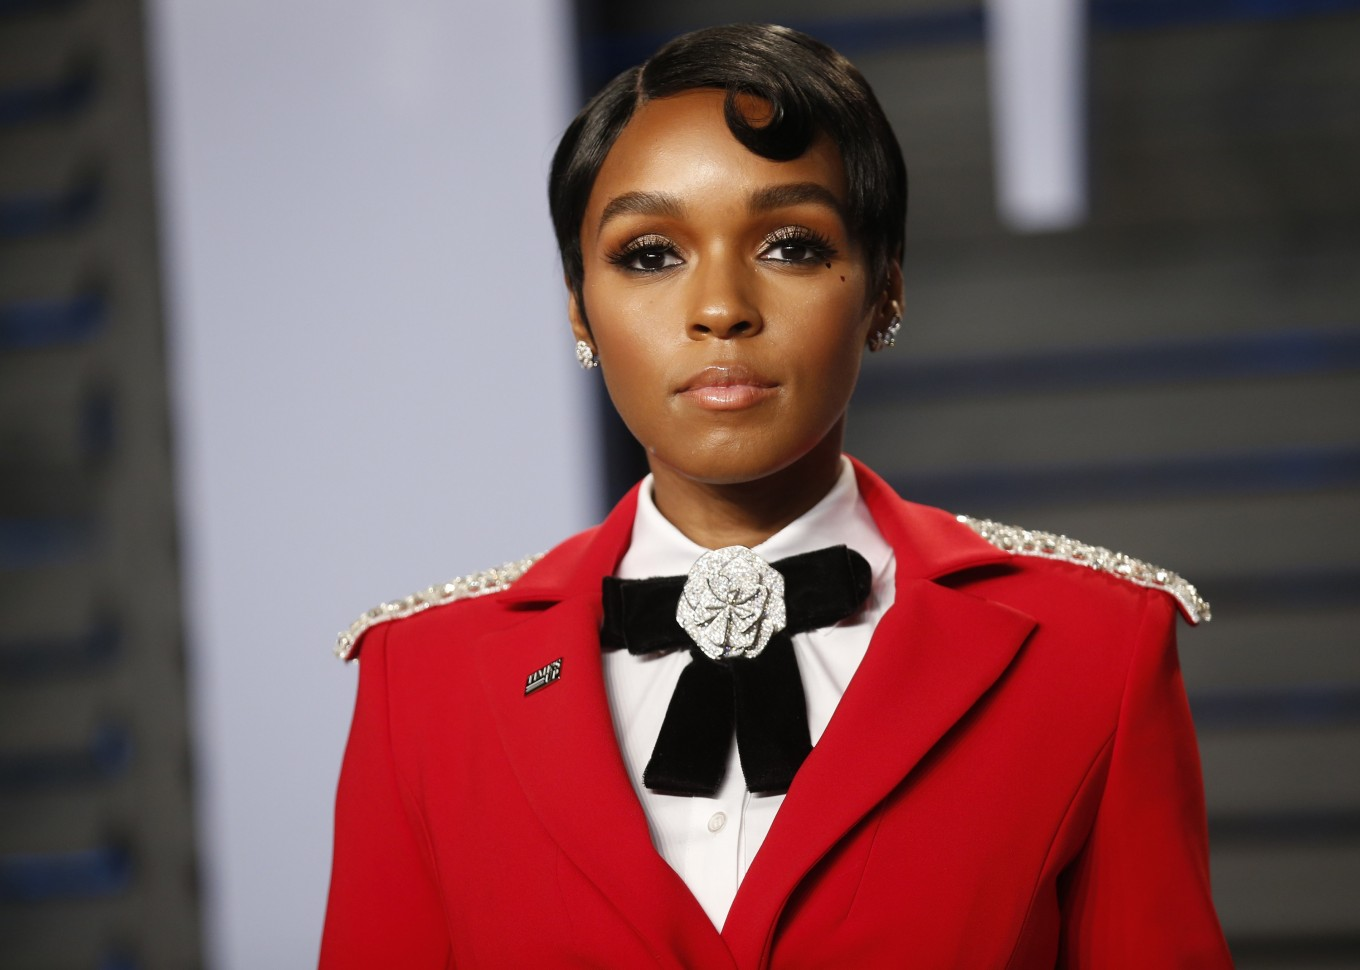 Janelle Monae says she's pansexual, and web searches soar